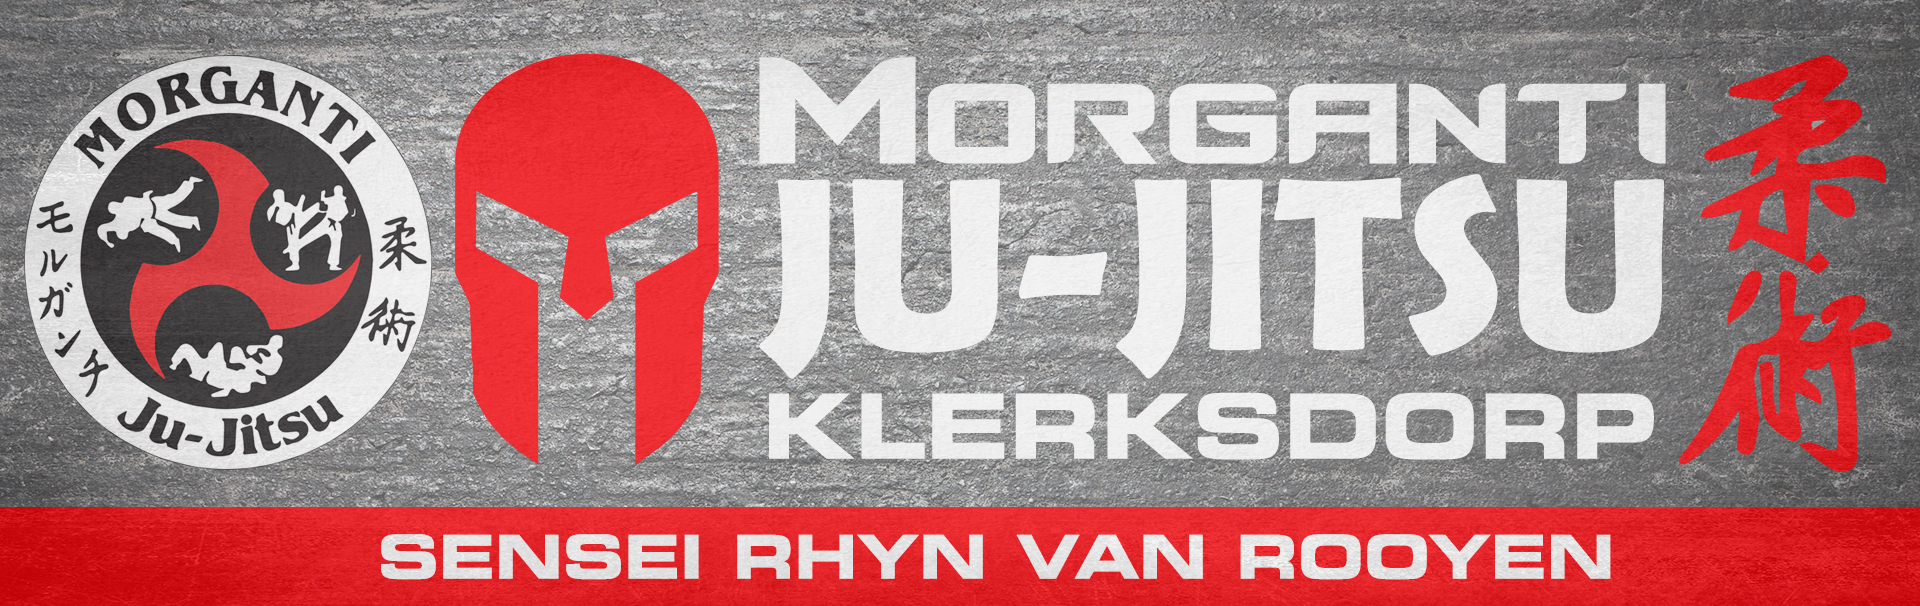 NW Trails Rustenburg 16 Sept 2017 | Morganti Ju-Jitsu Klerksdorp